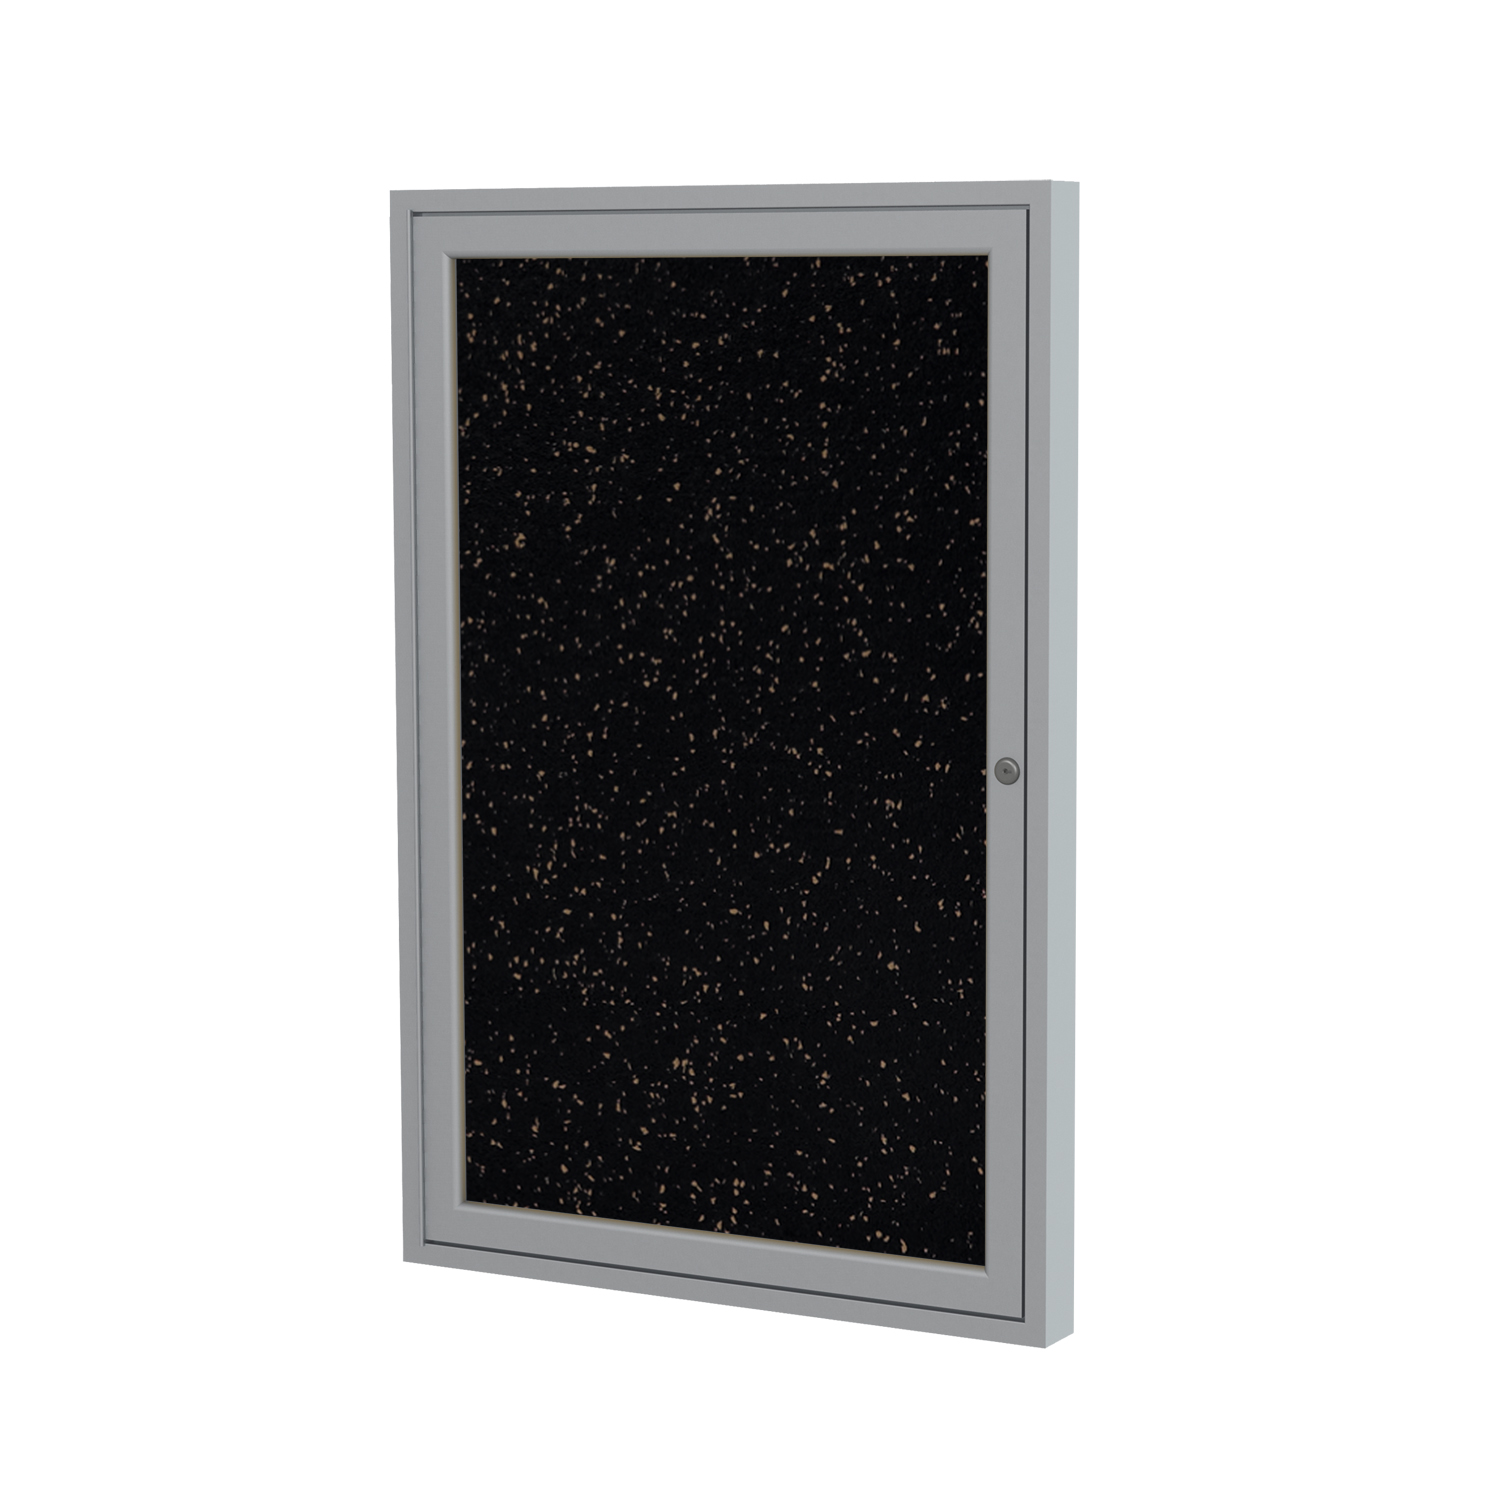 PA12418TR-BK Ghent 1 Door Enclosed Recycled Rubber Bulletin Board with Satin Frame Wall Maunted Tackboard, 24 in H x 18 in W, Black